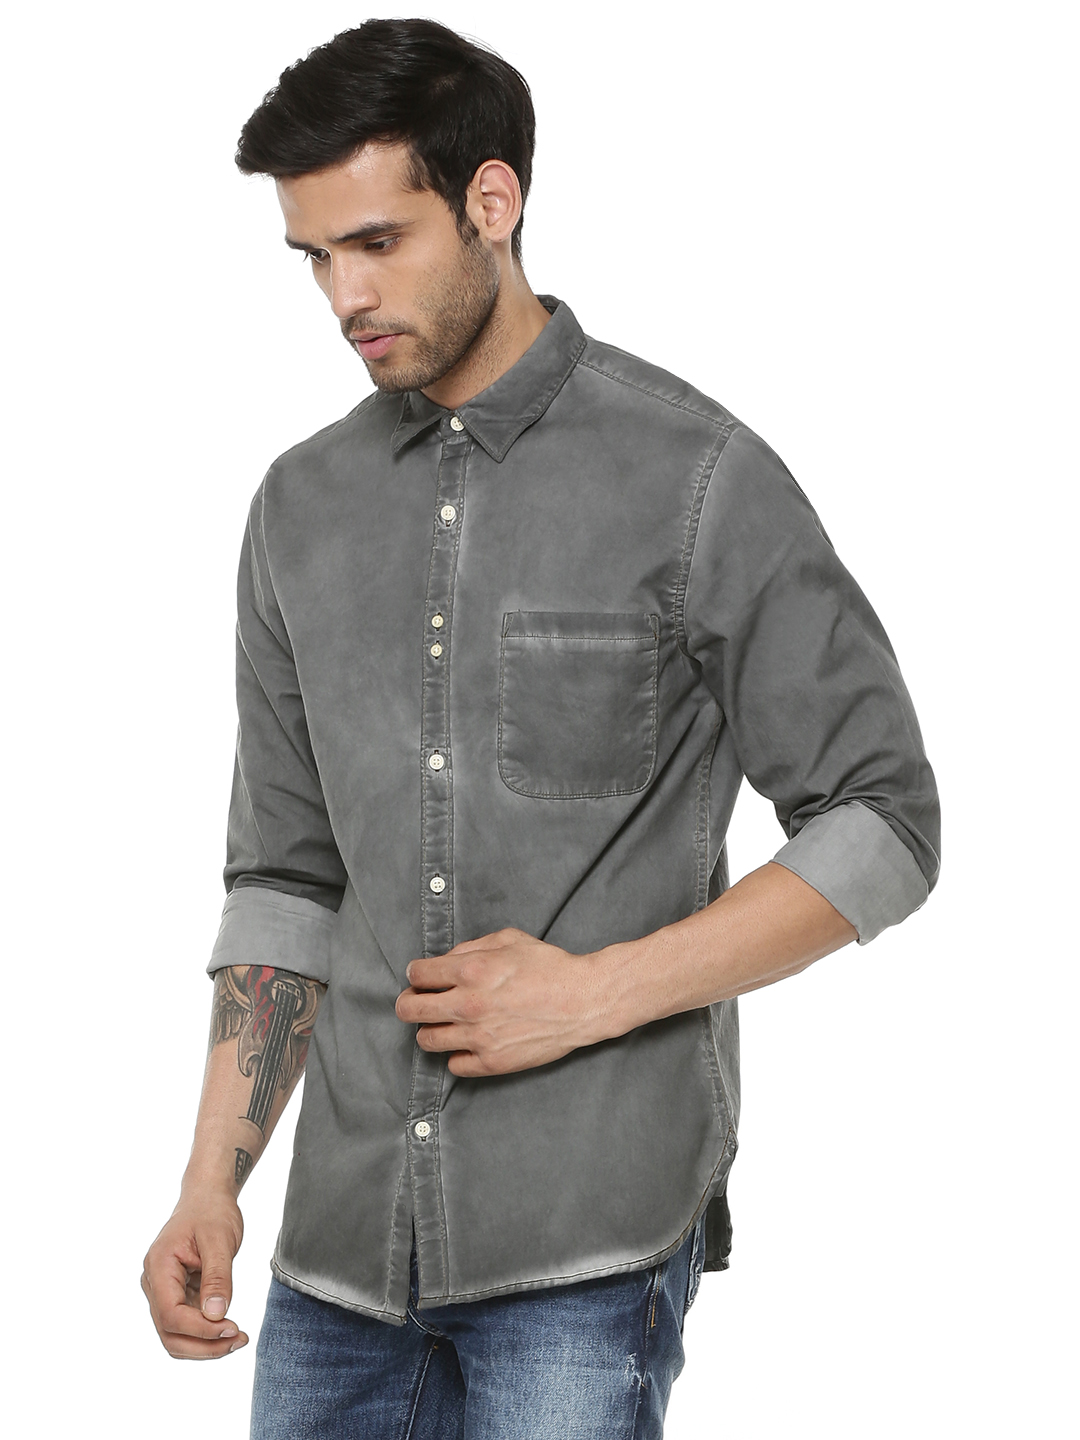 Blue Saint GREY WASHED Oil Washed Shirt 1